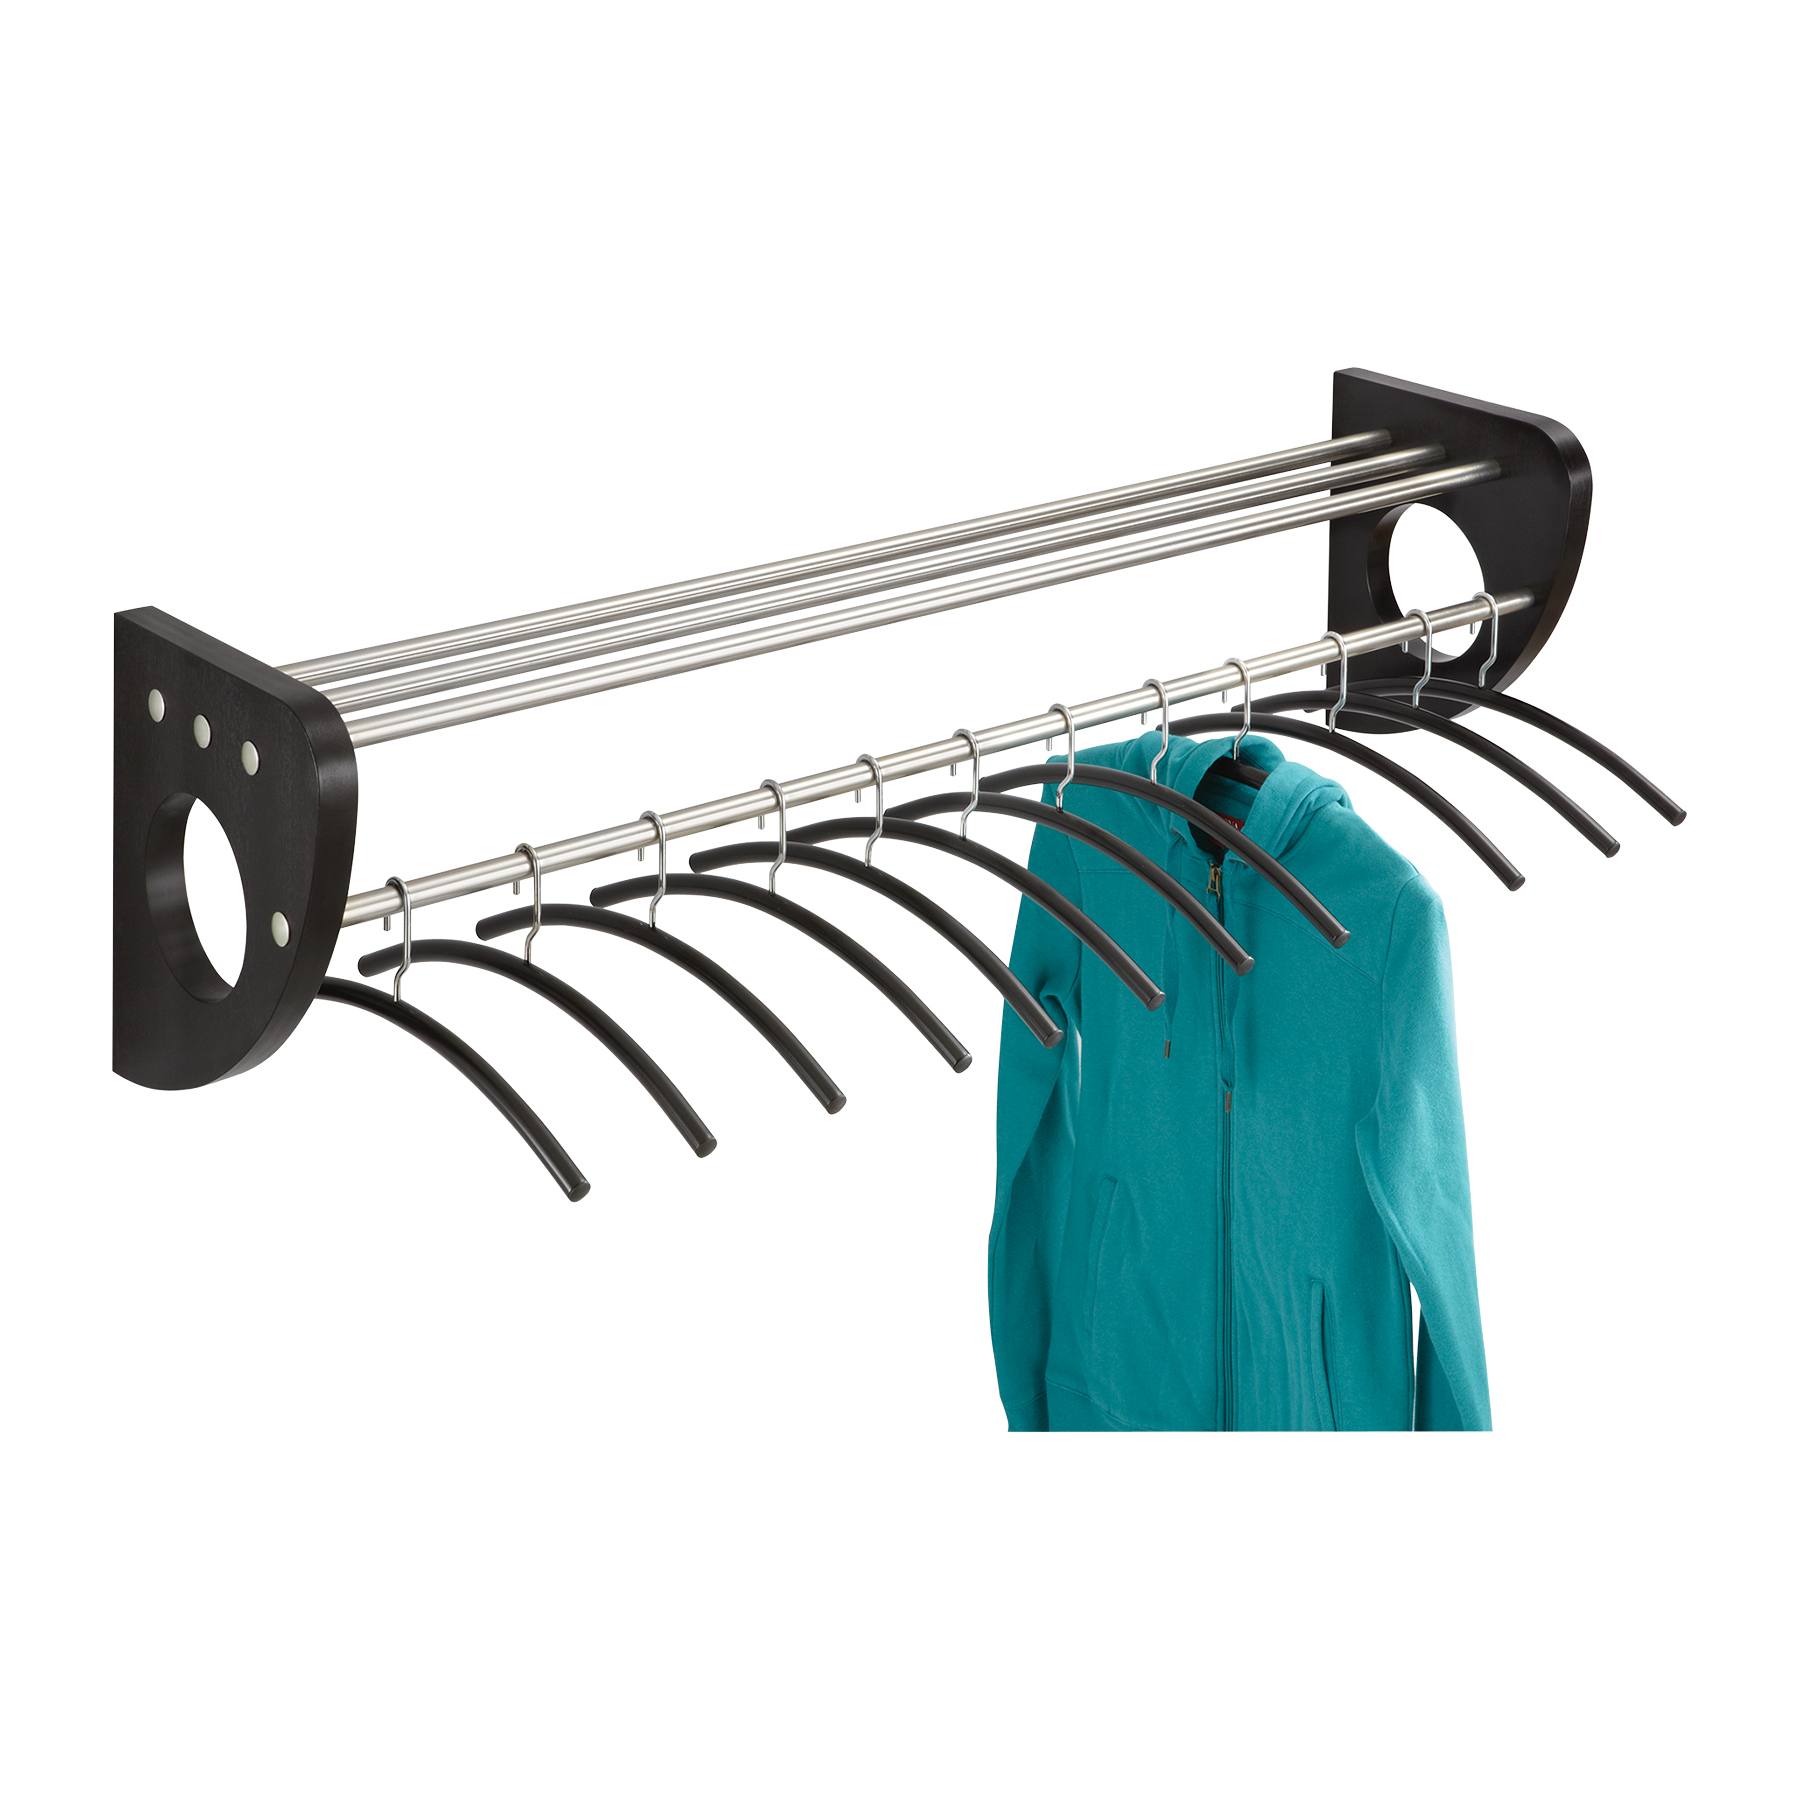 Safco 4213BL Coat Racks Mode 48 In Wood Wall Coat Rack With Hangers